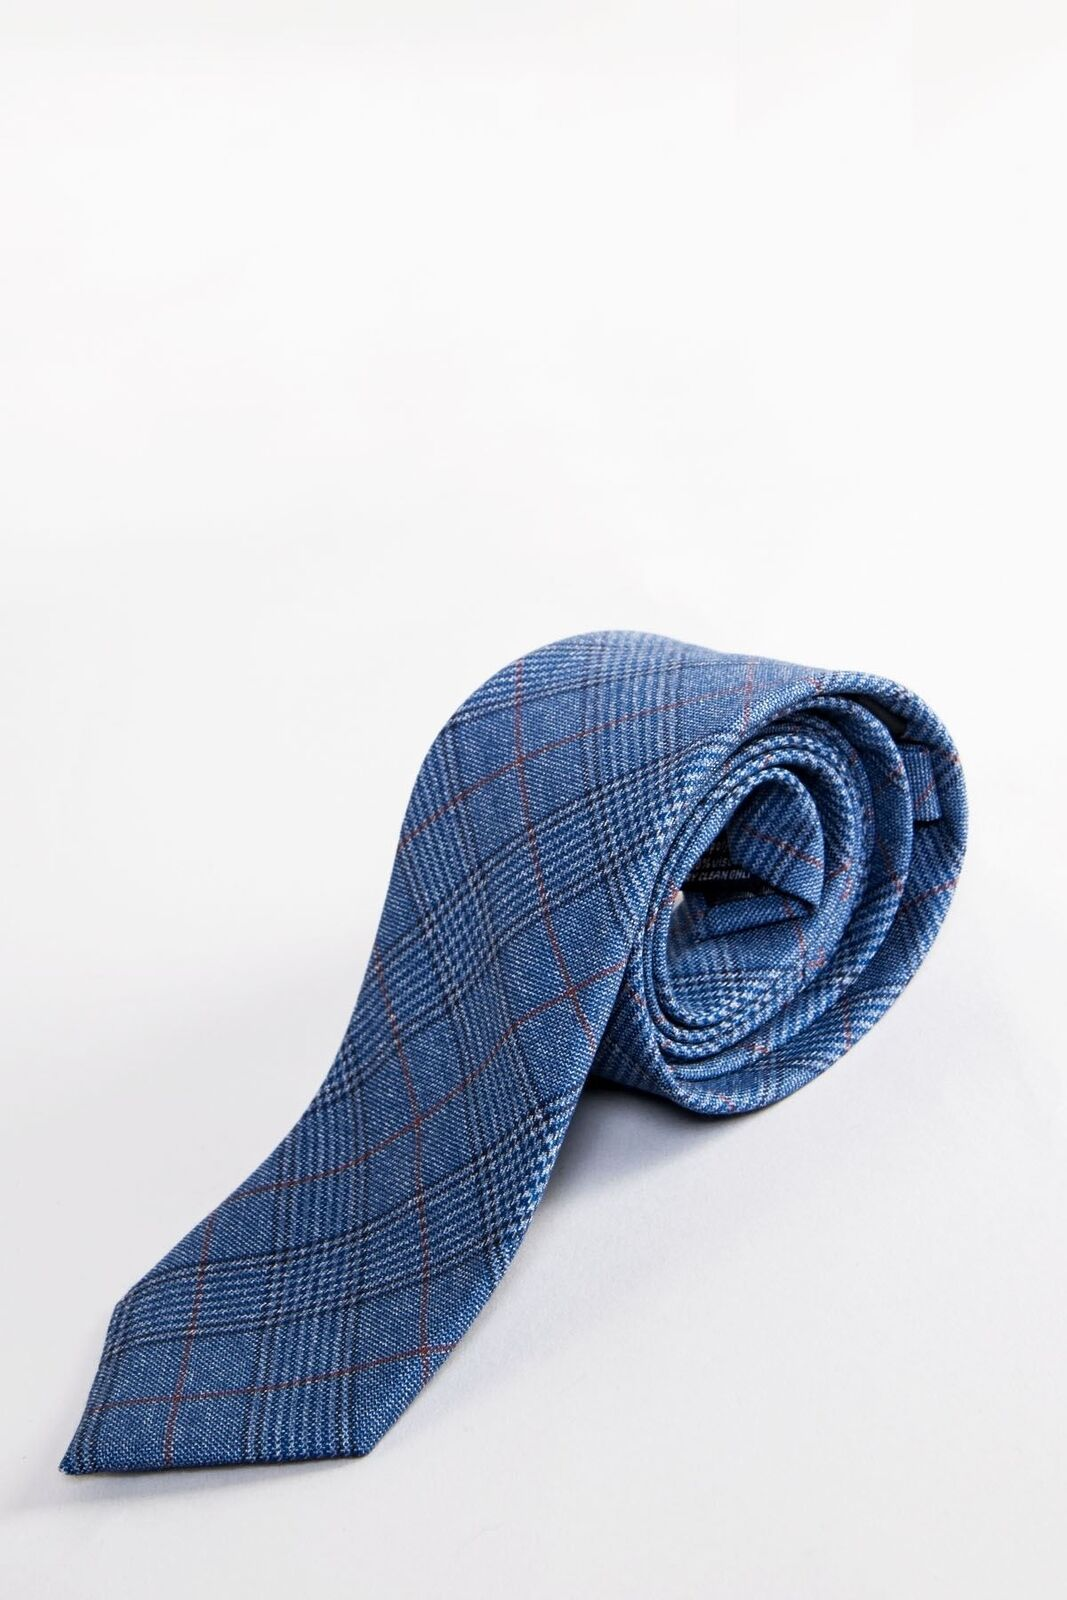 Mens Check Work Tie Formal Business Plaid Print Office Party Neck Tie